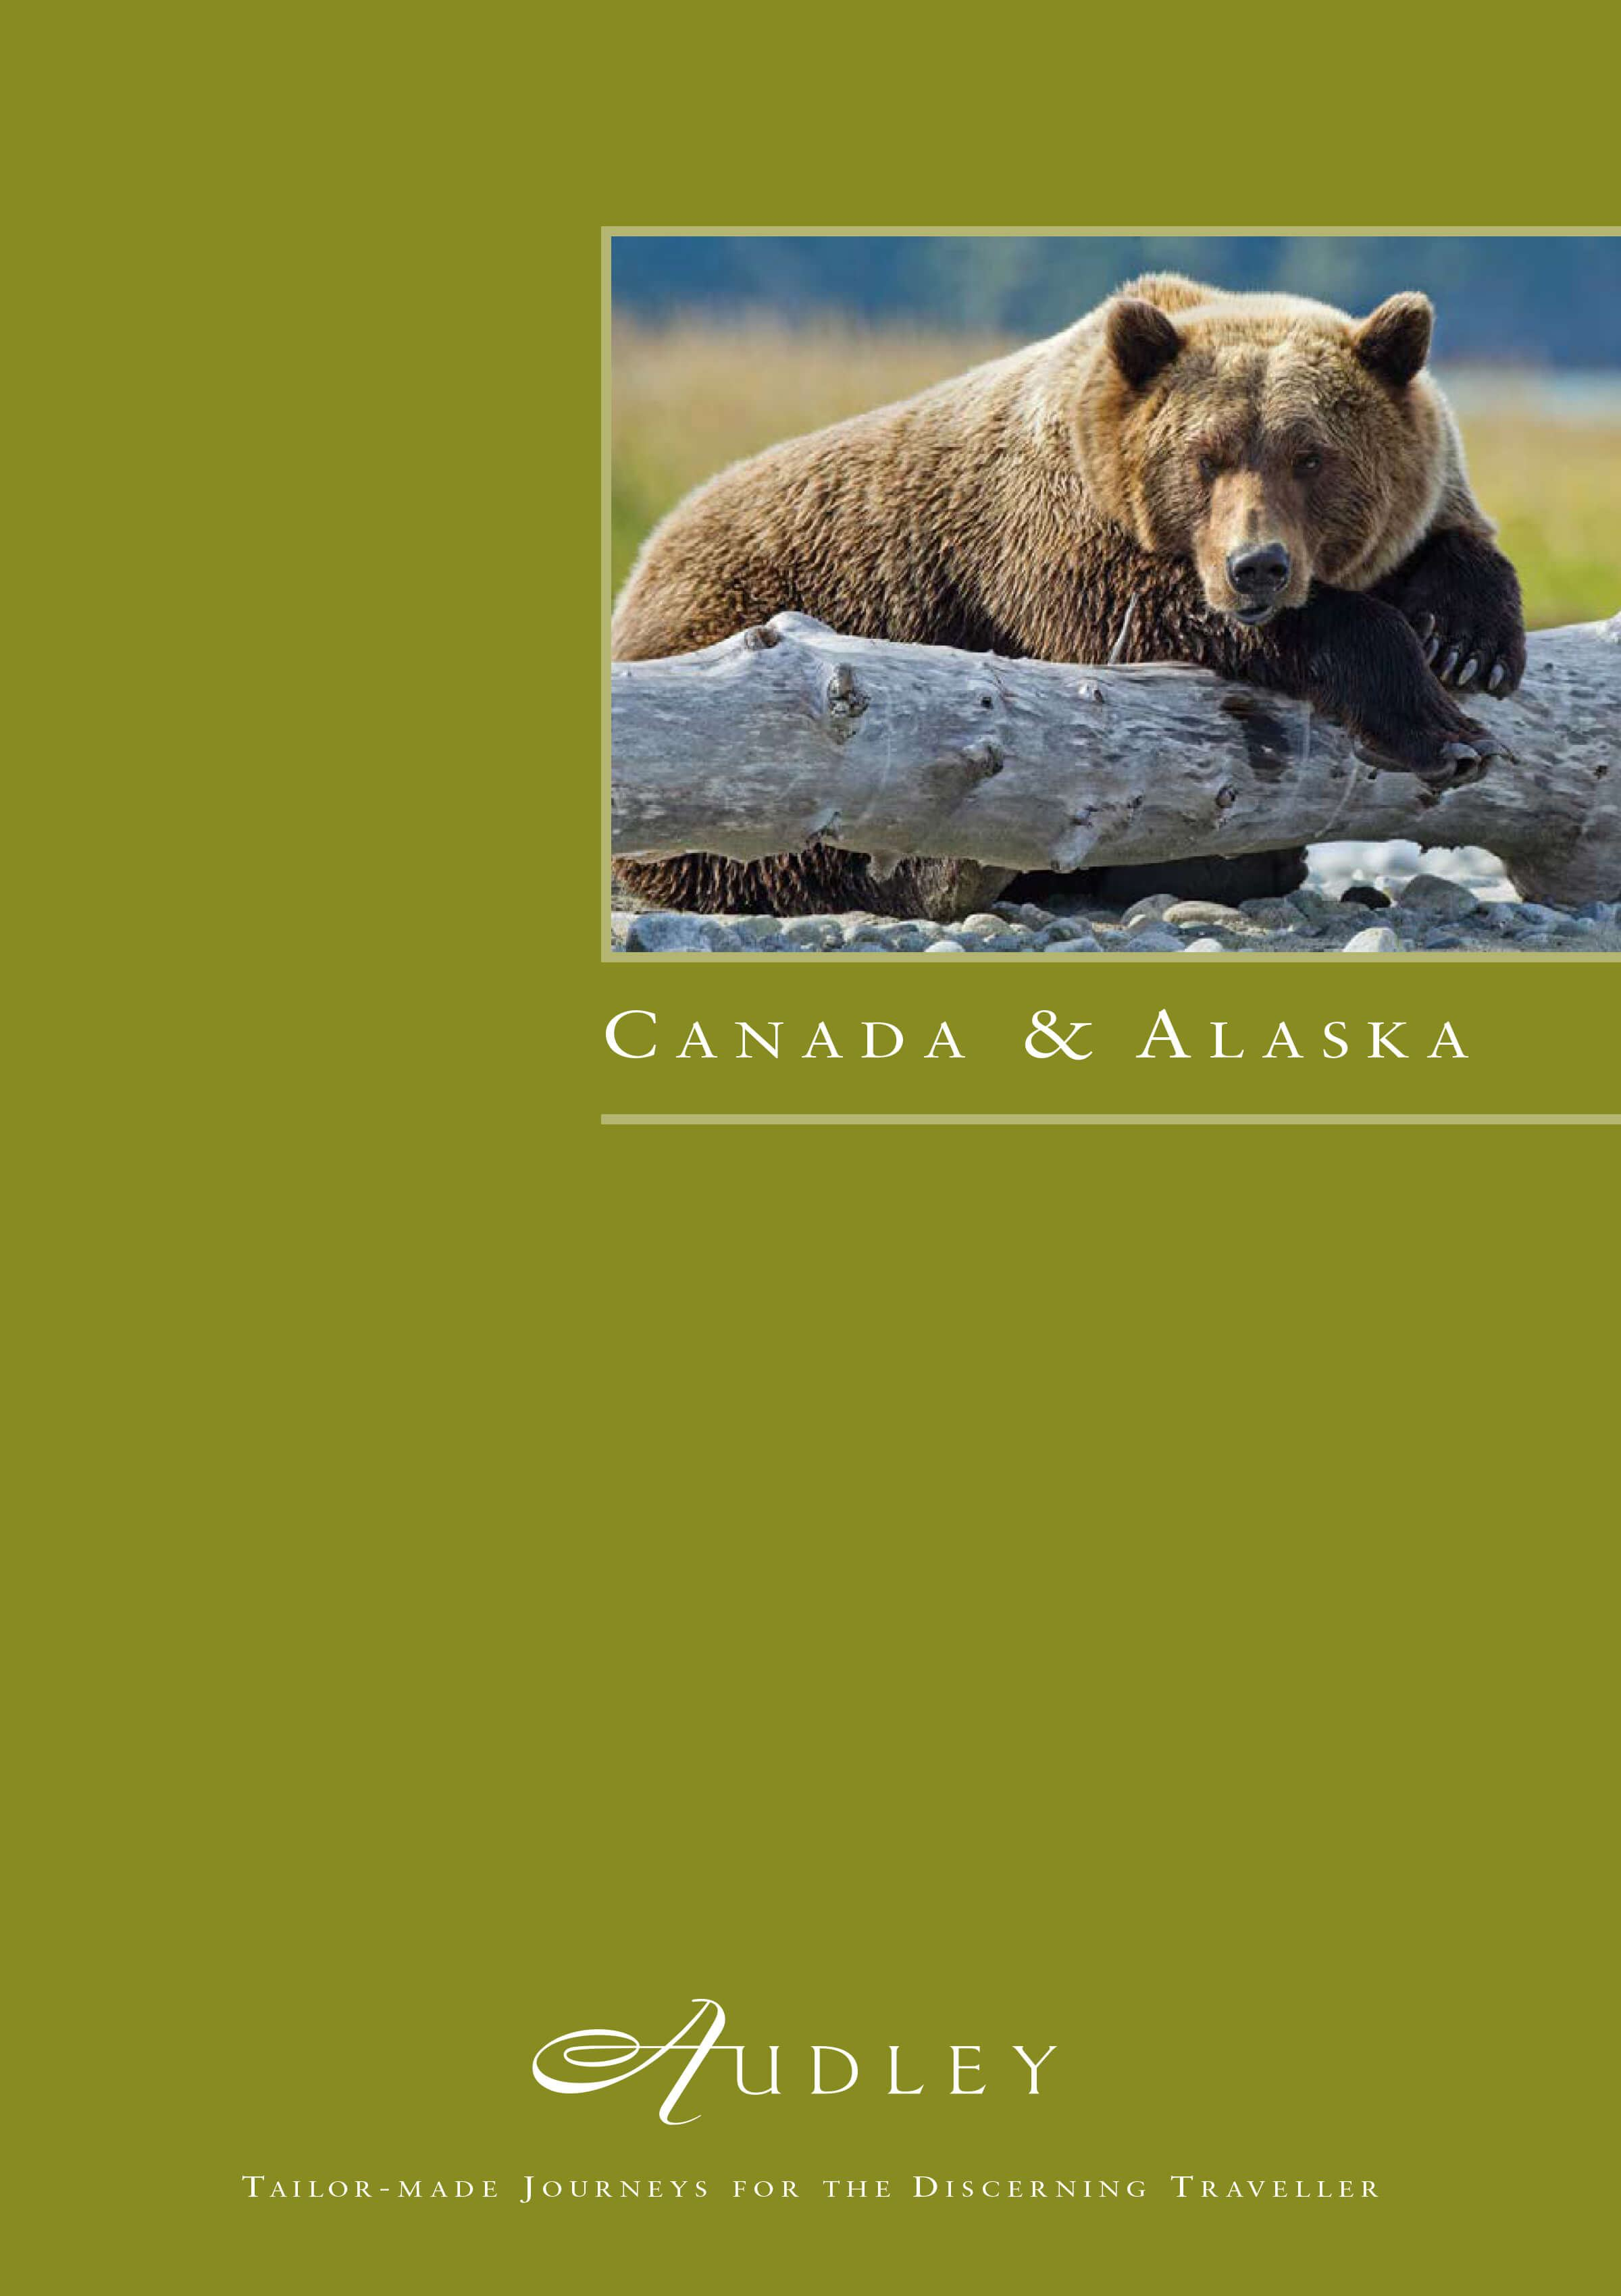 Audley Canada and Alaska Brochure Cover